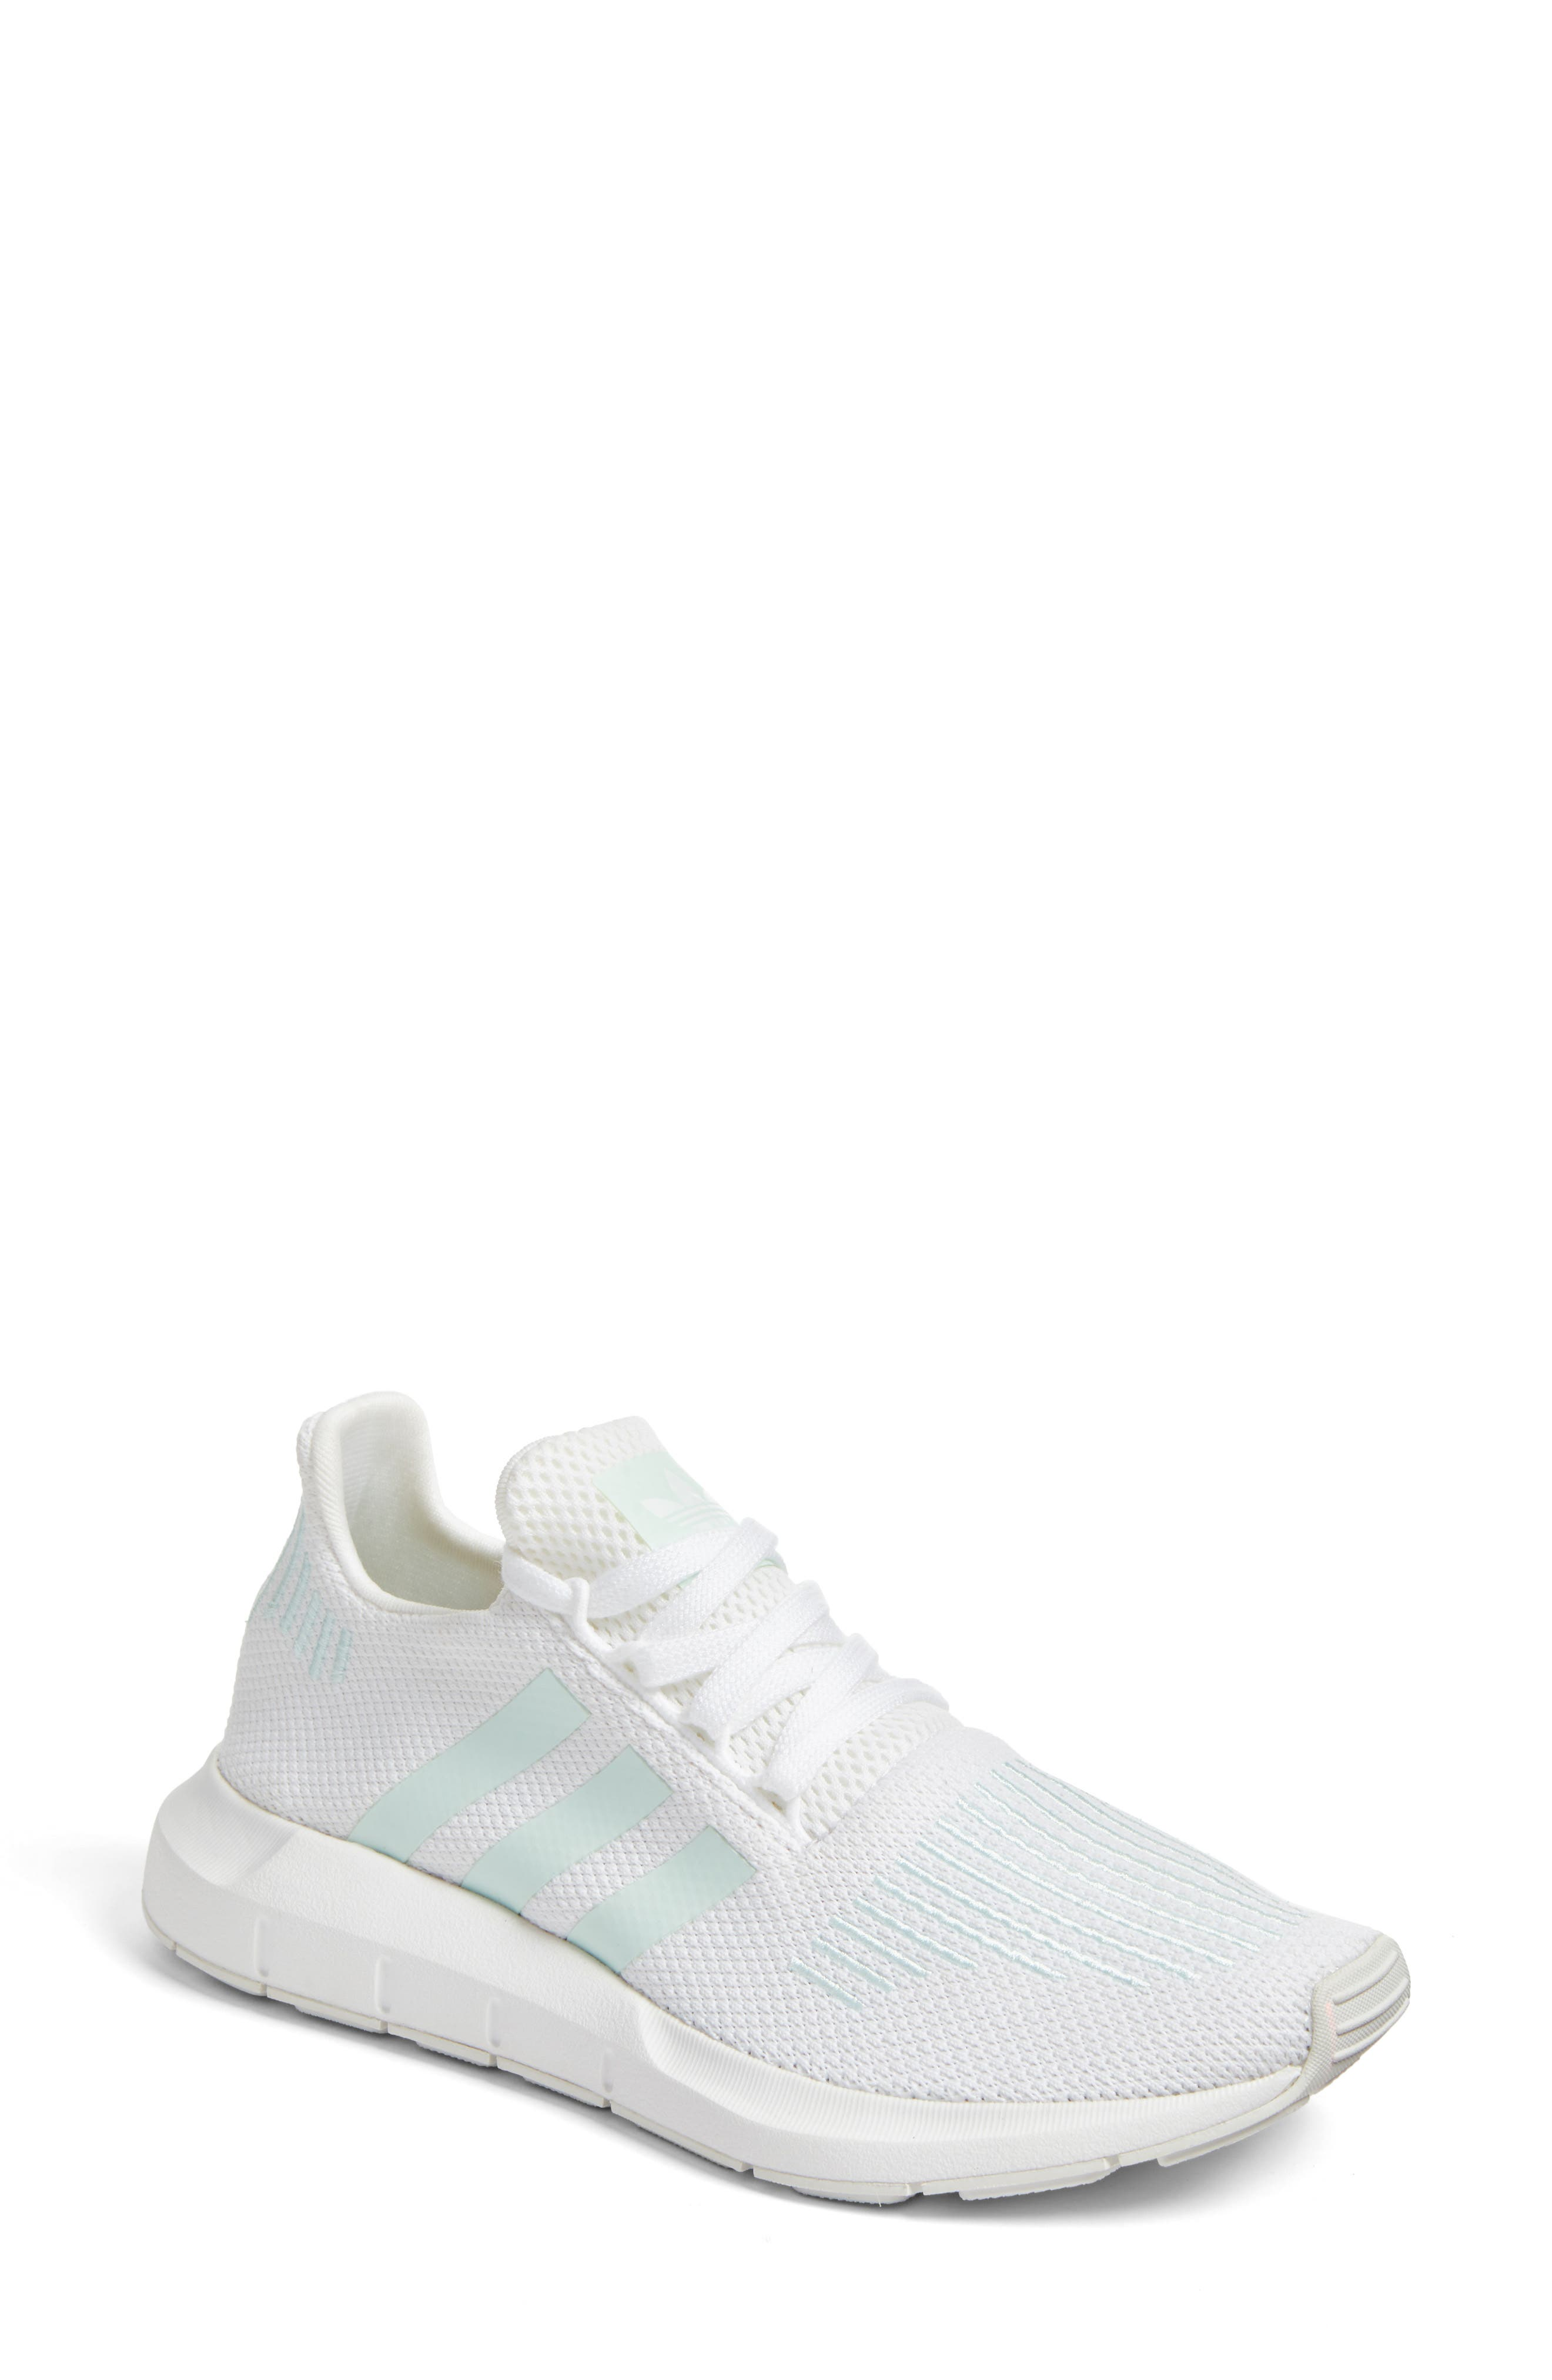 adidas Swift Run Sneaker (Women)